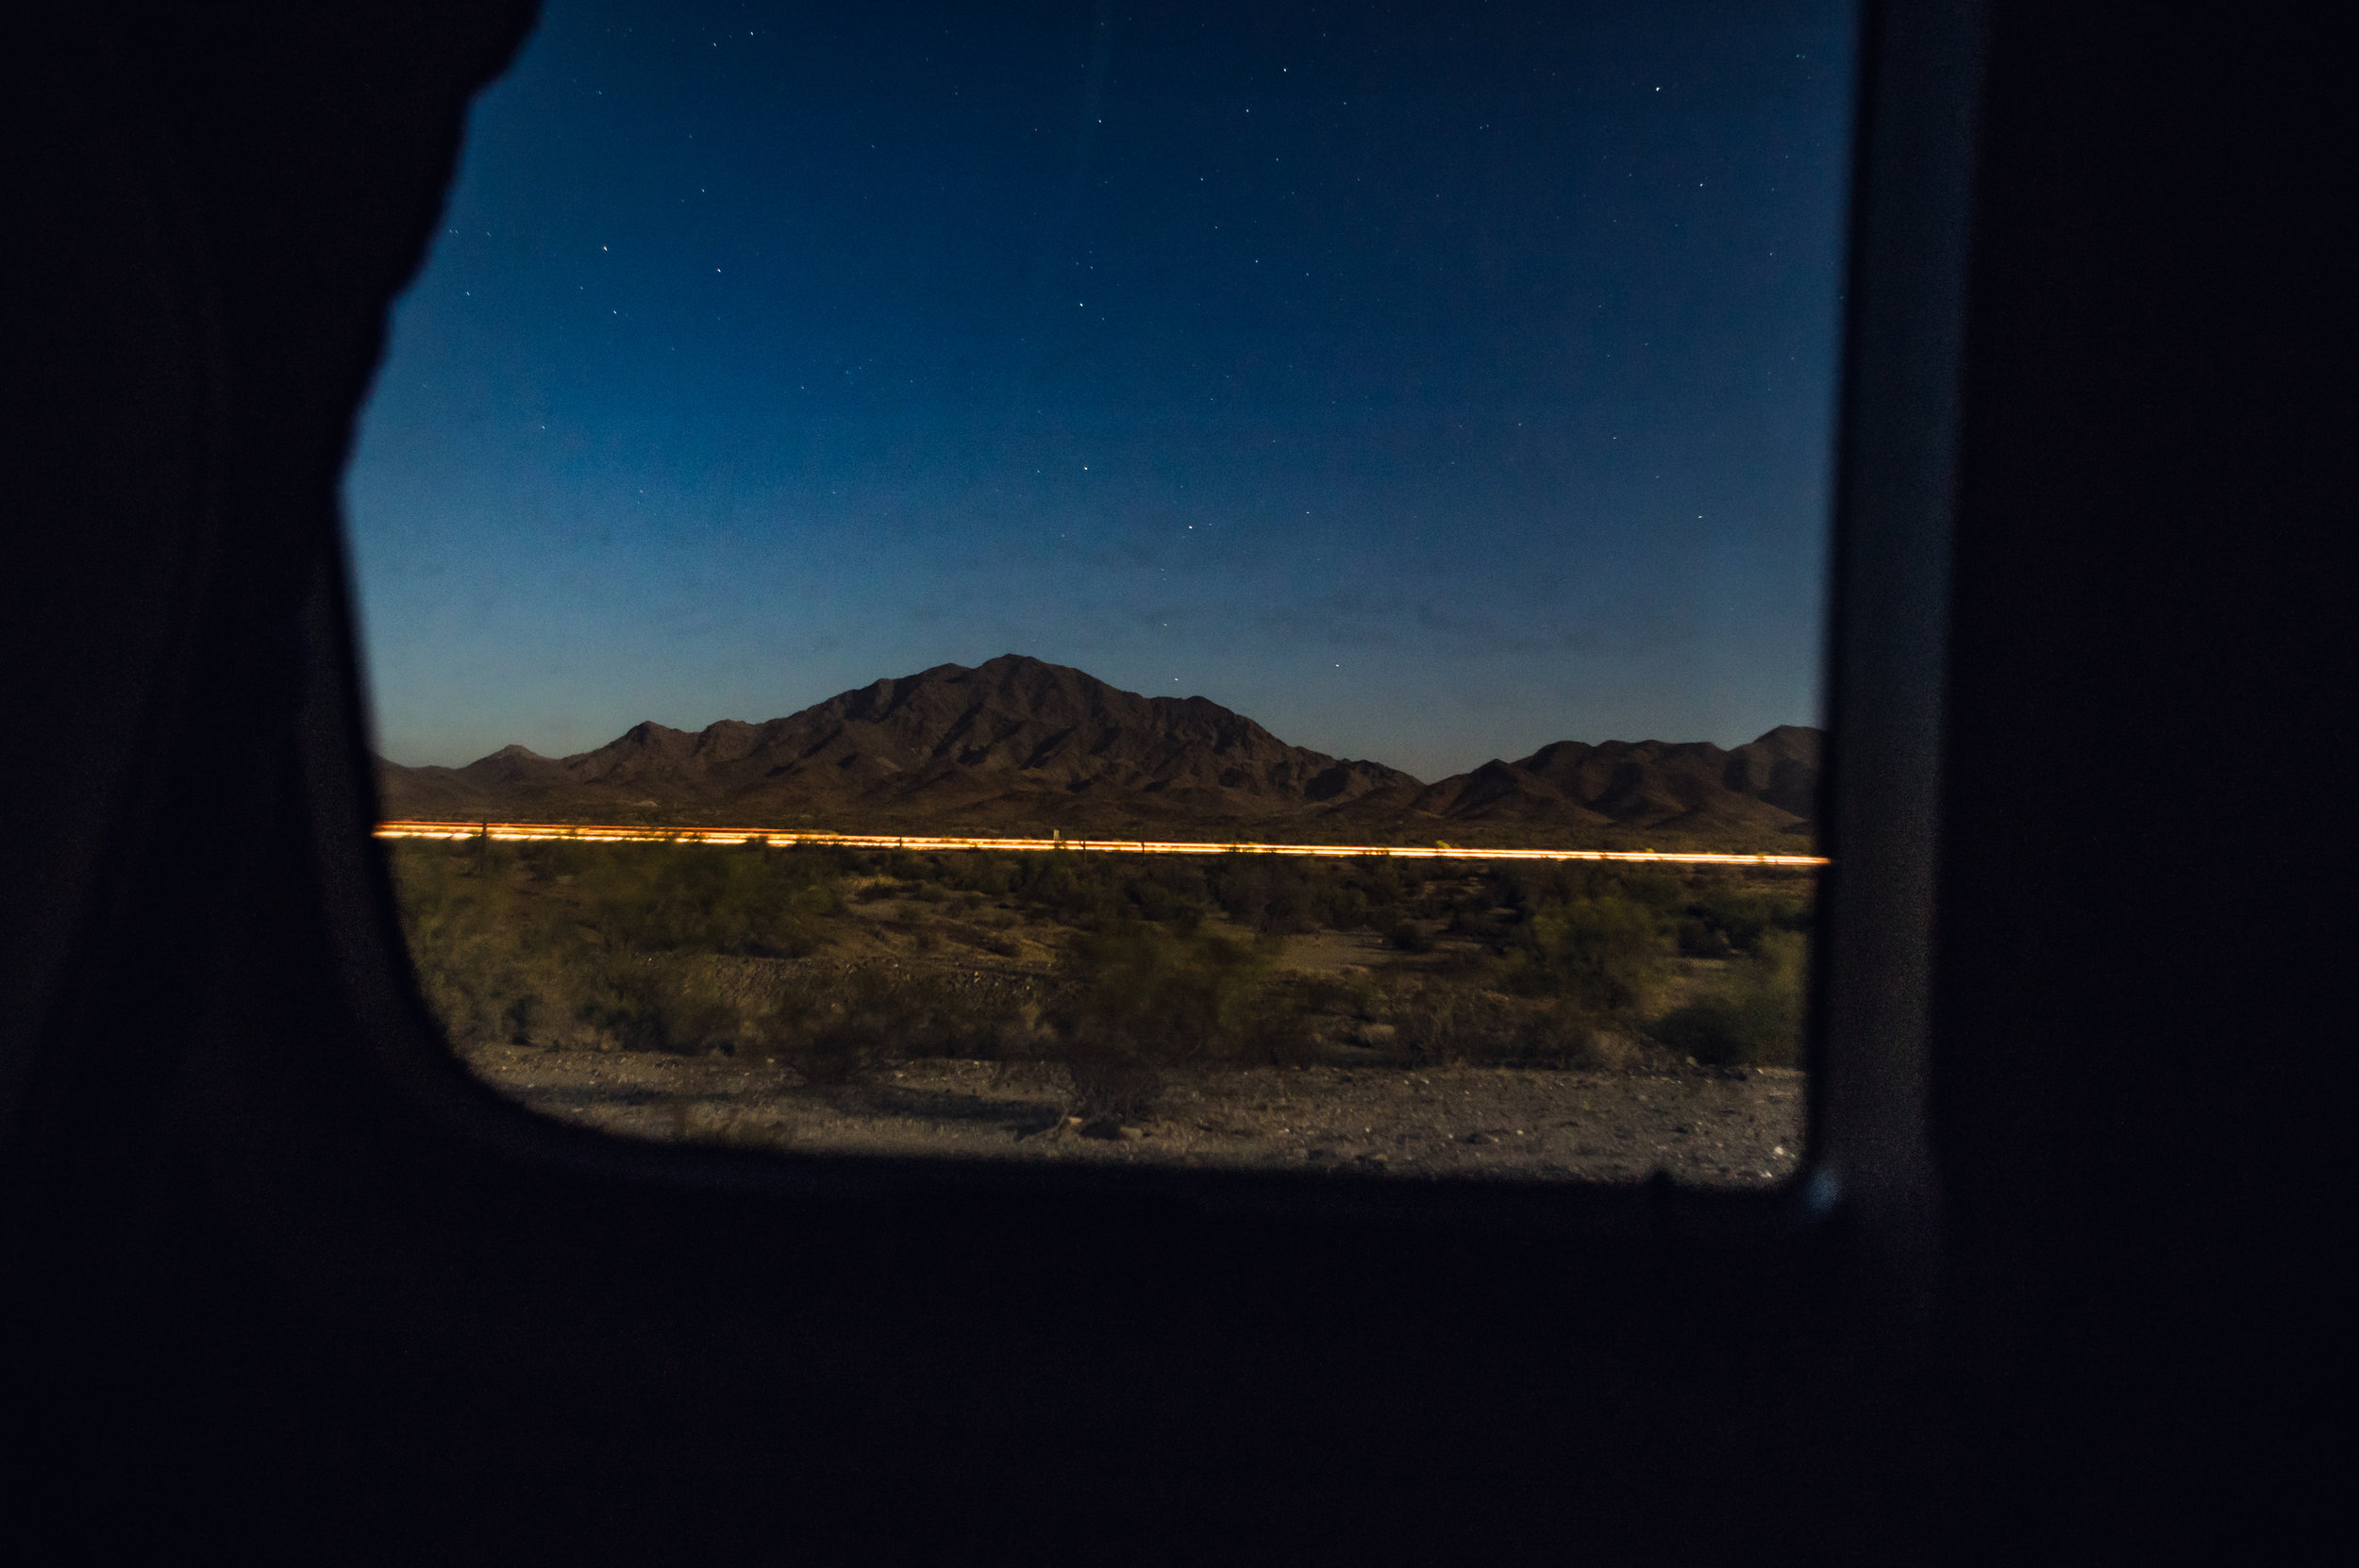 BLM Quartzsite - nighttime is the best time